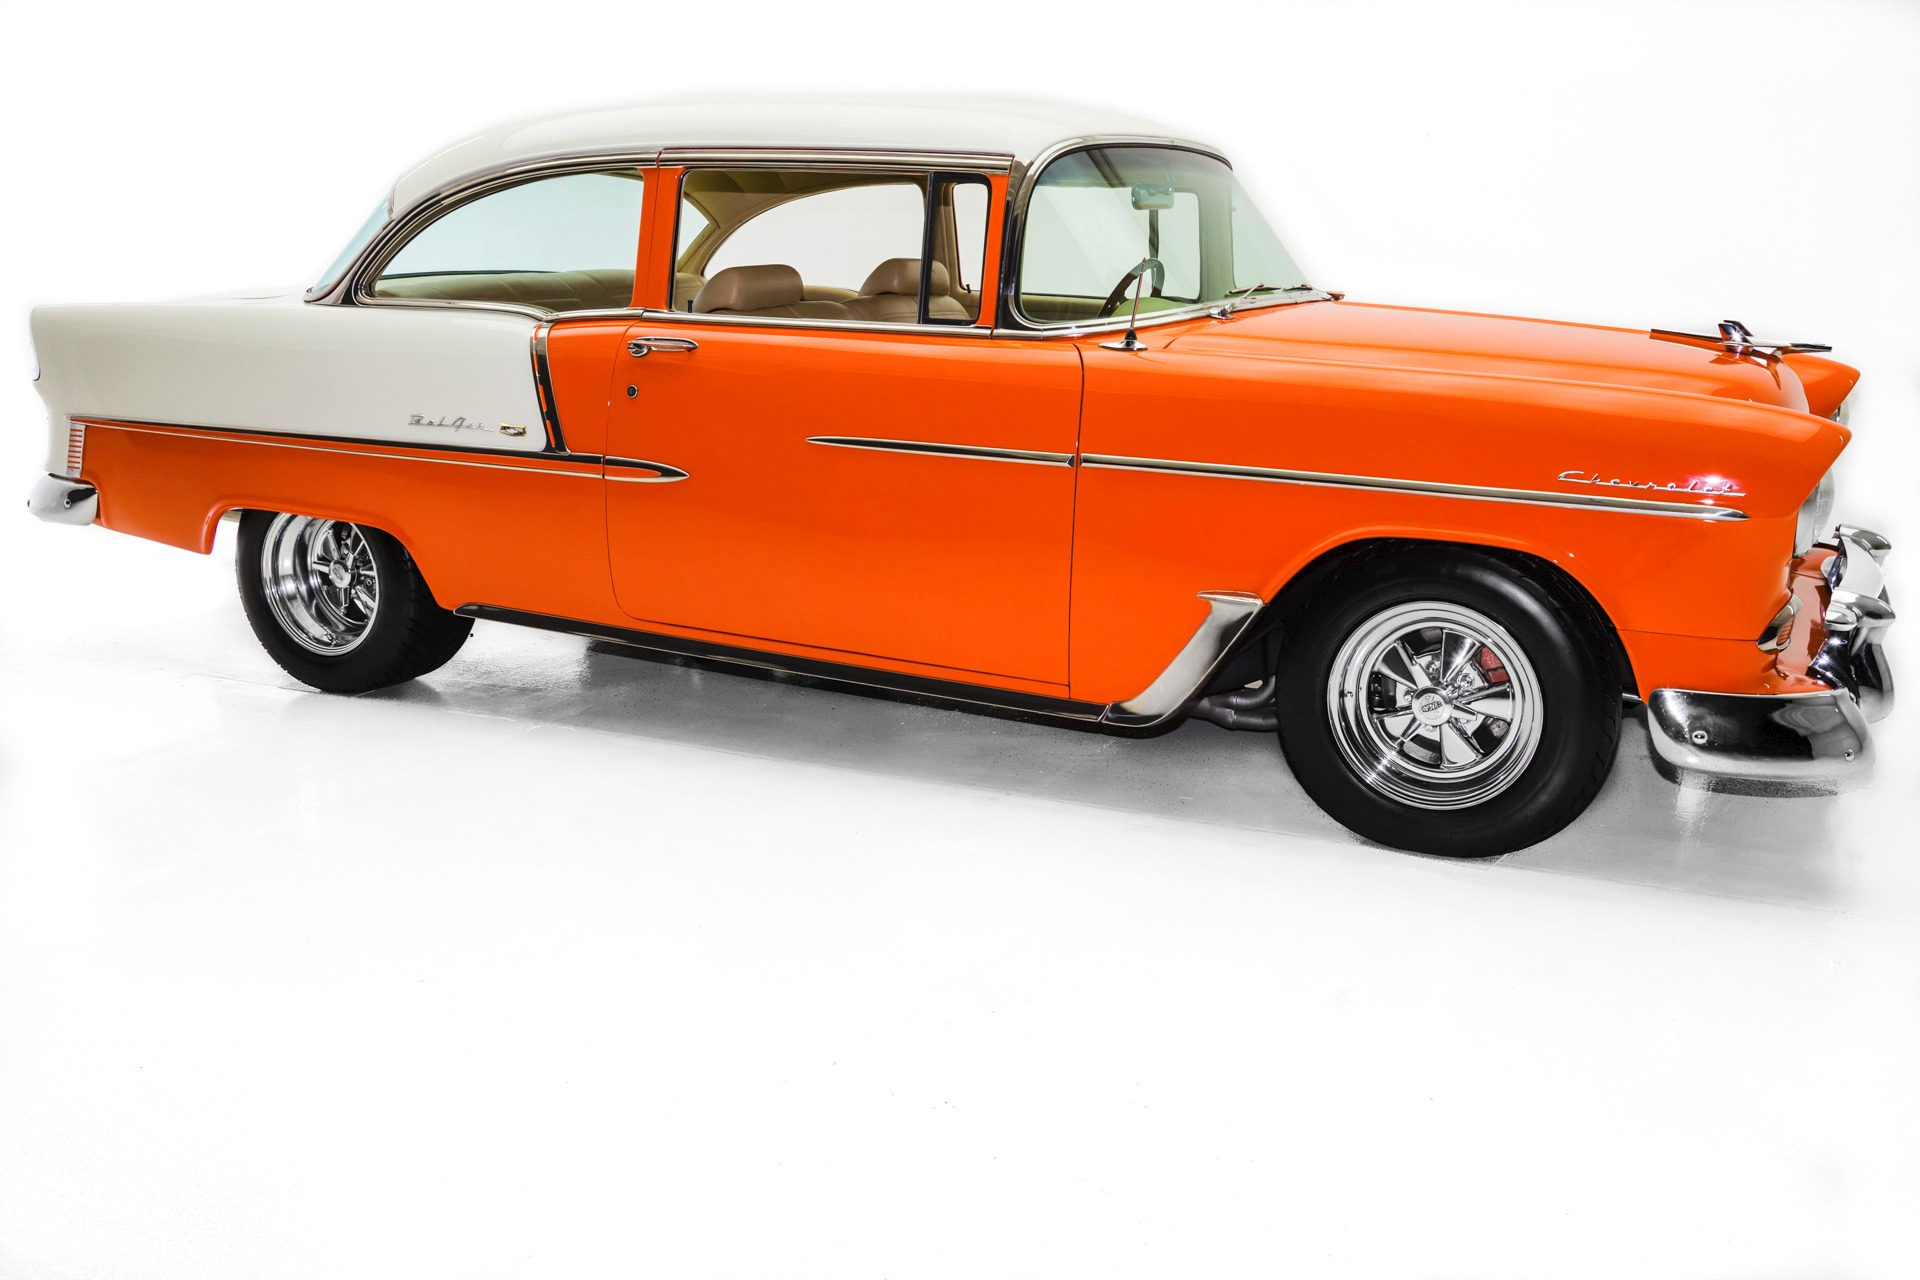 For Sale Used 1955 Chevrolet Bel Air The Orange Crush, 396 | American Dream Machines Des Moines IA 50309